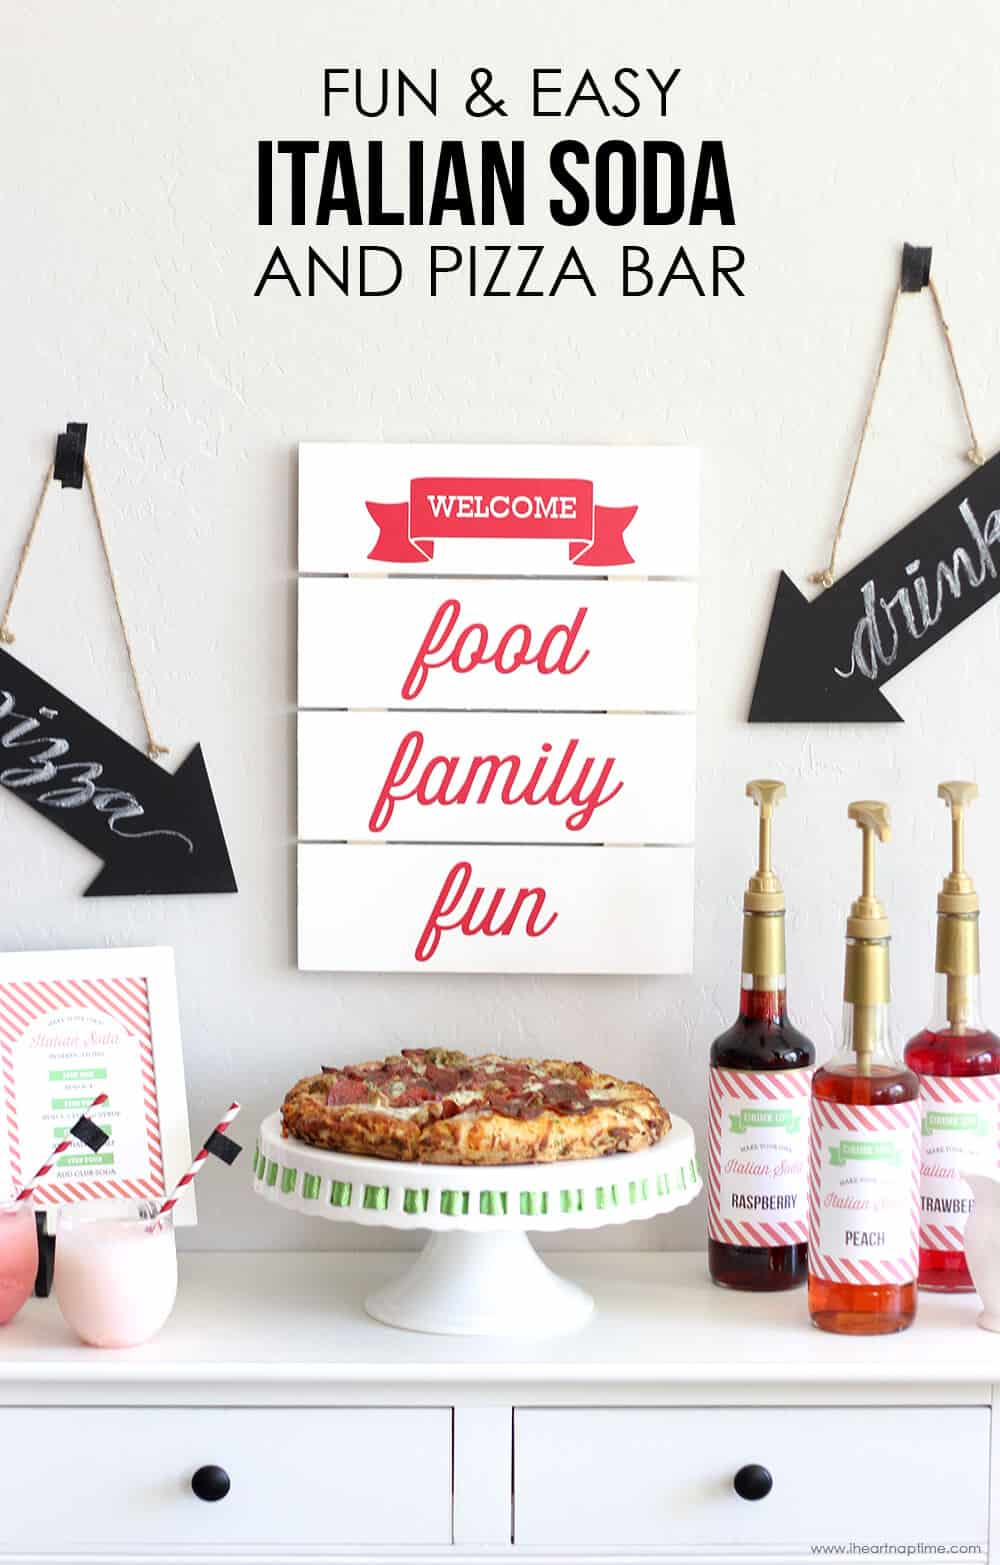 Hosting a fun family night doesn't have to be hard. Recreate this Easy Family Pizza Night pizza that your family (and friends!) will love!